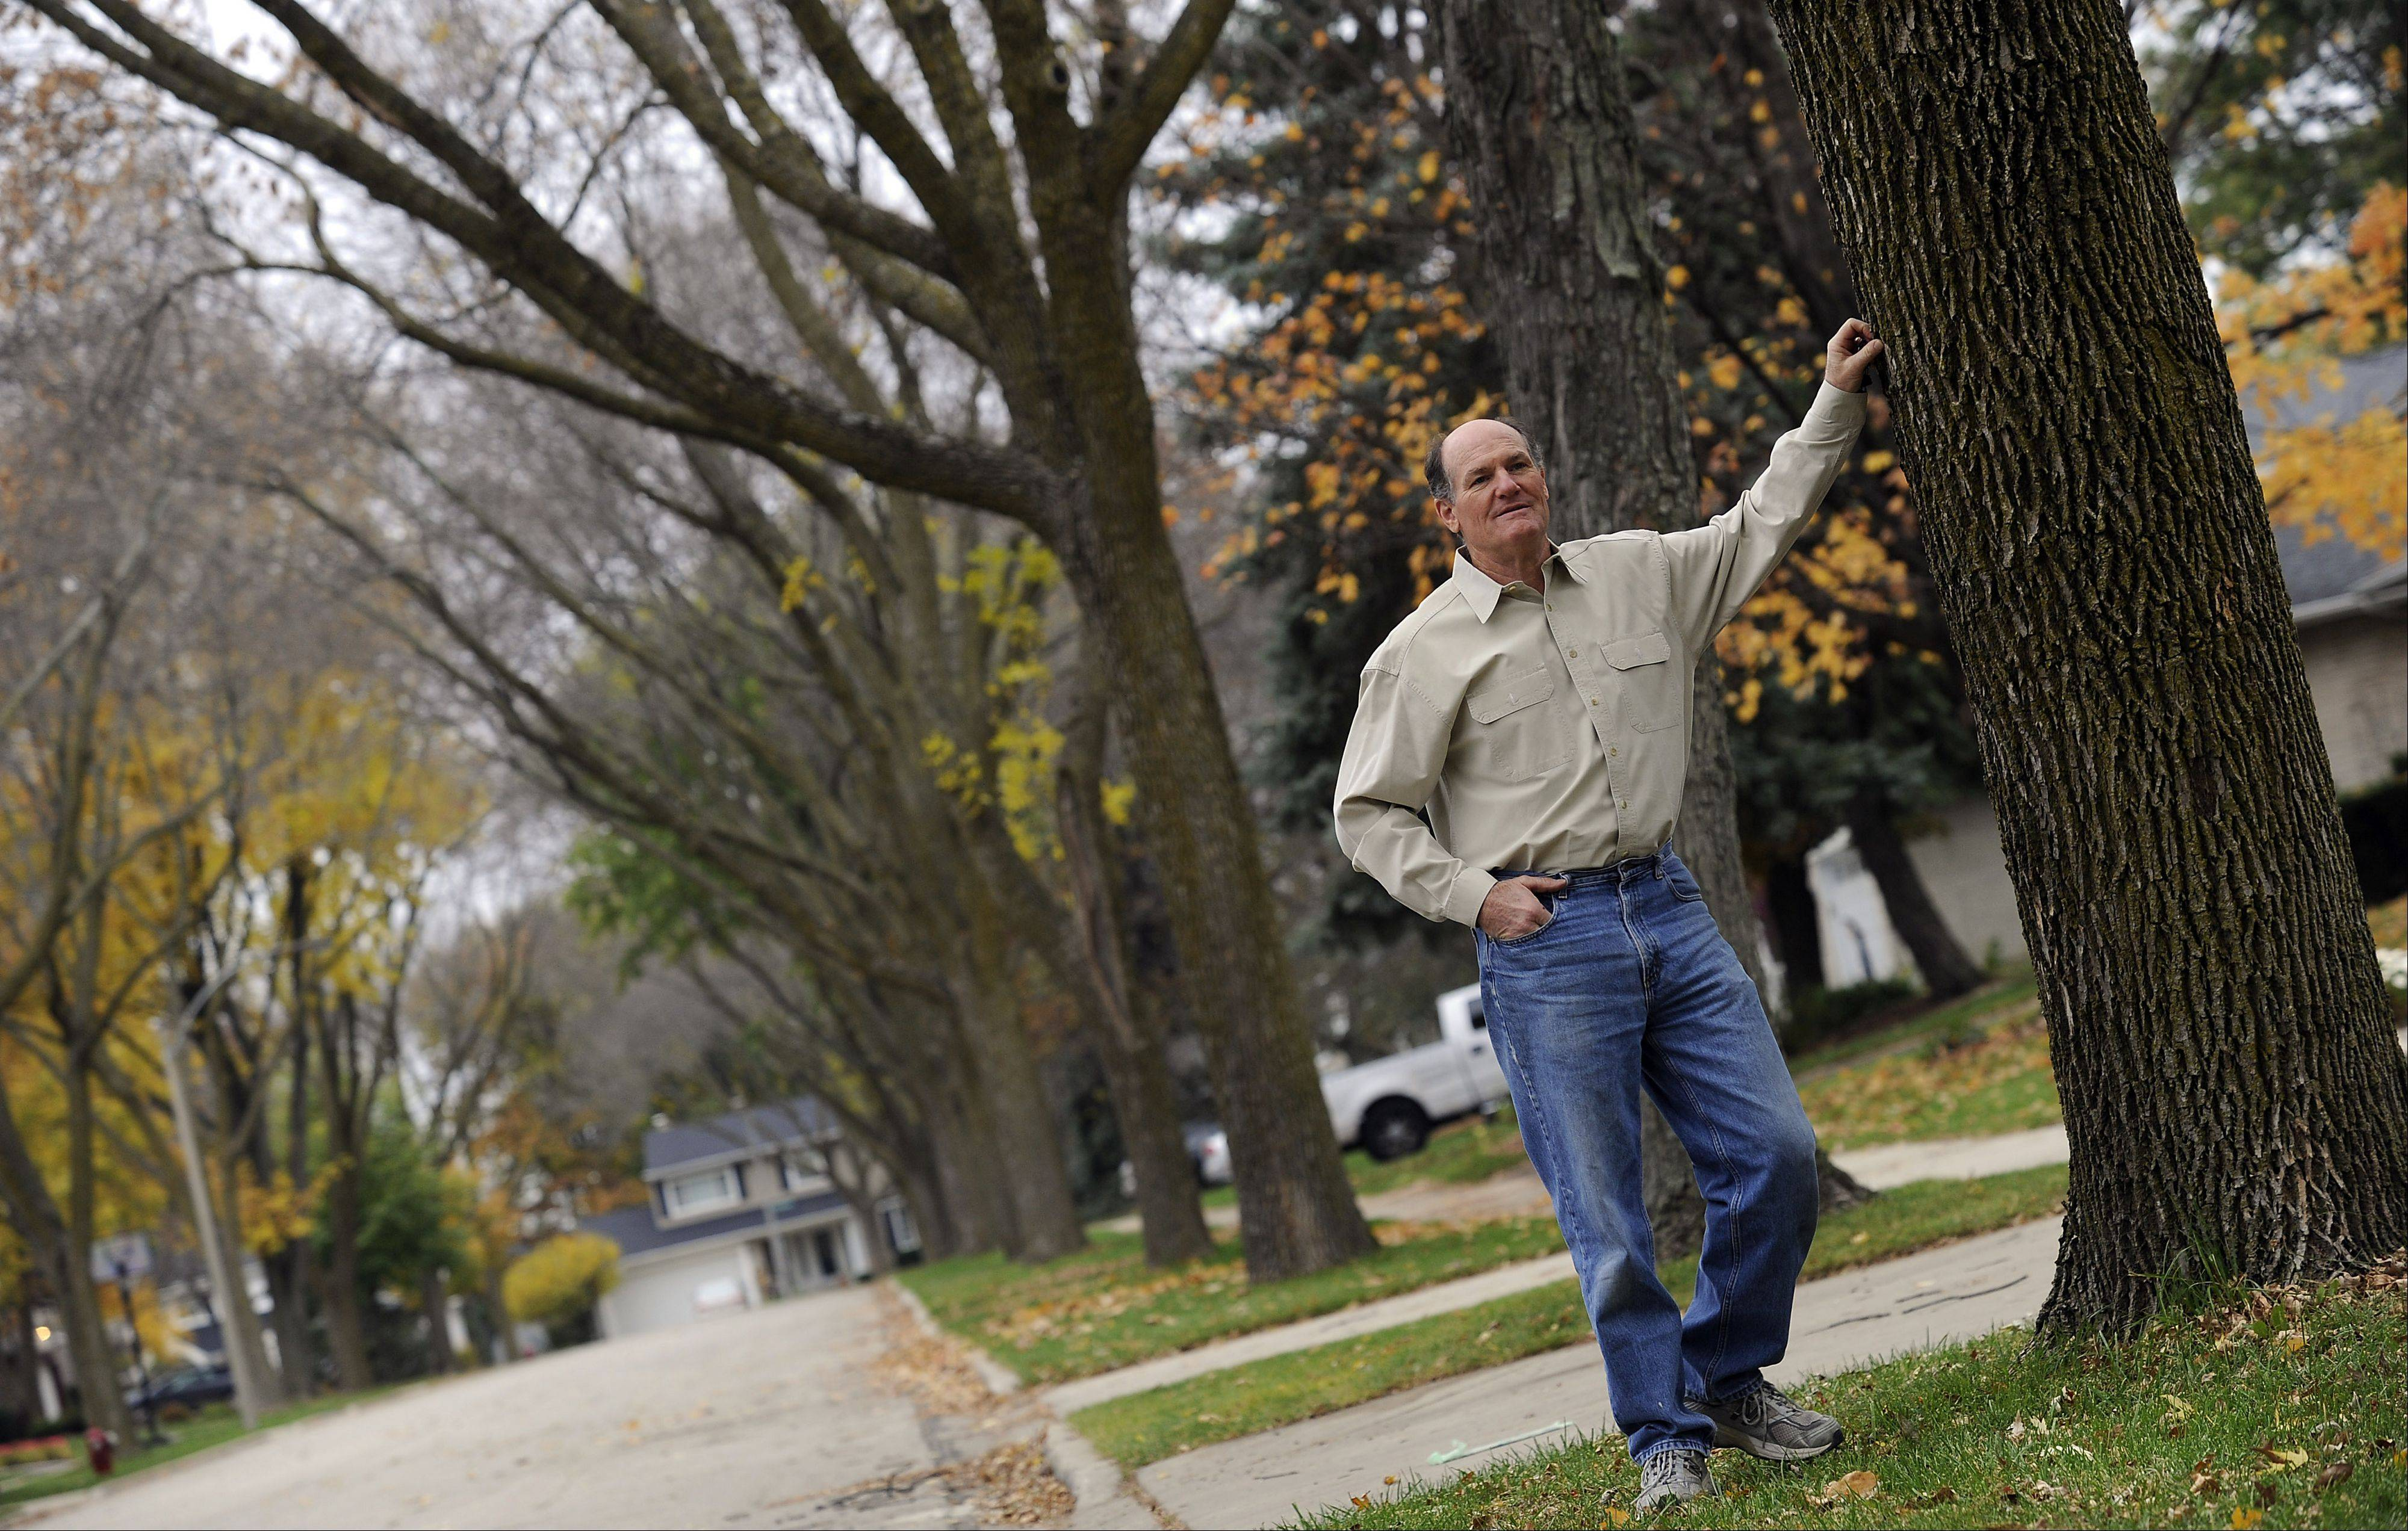 Arlington Heights resident Sam Moser helped lead a campaign to save trees from emerald ash borer rather than removing them.